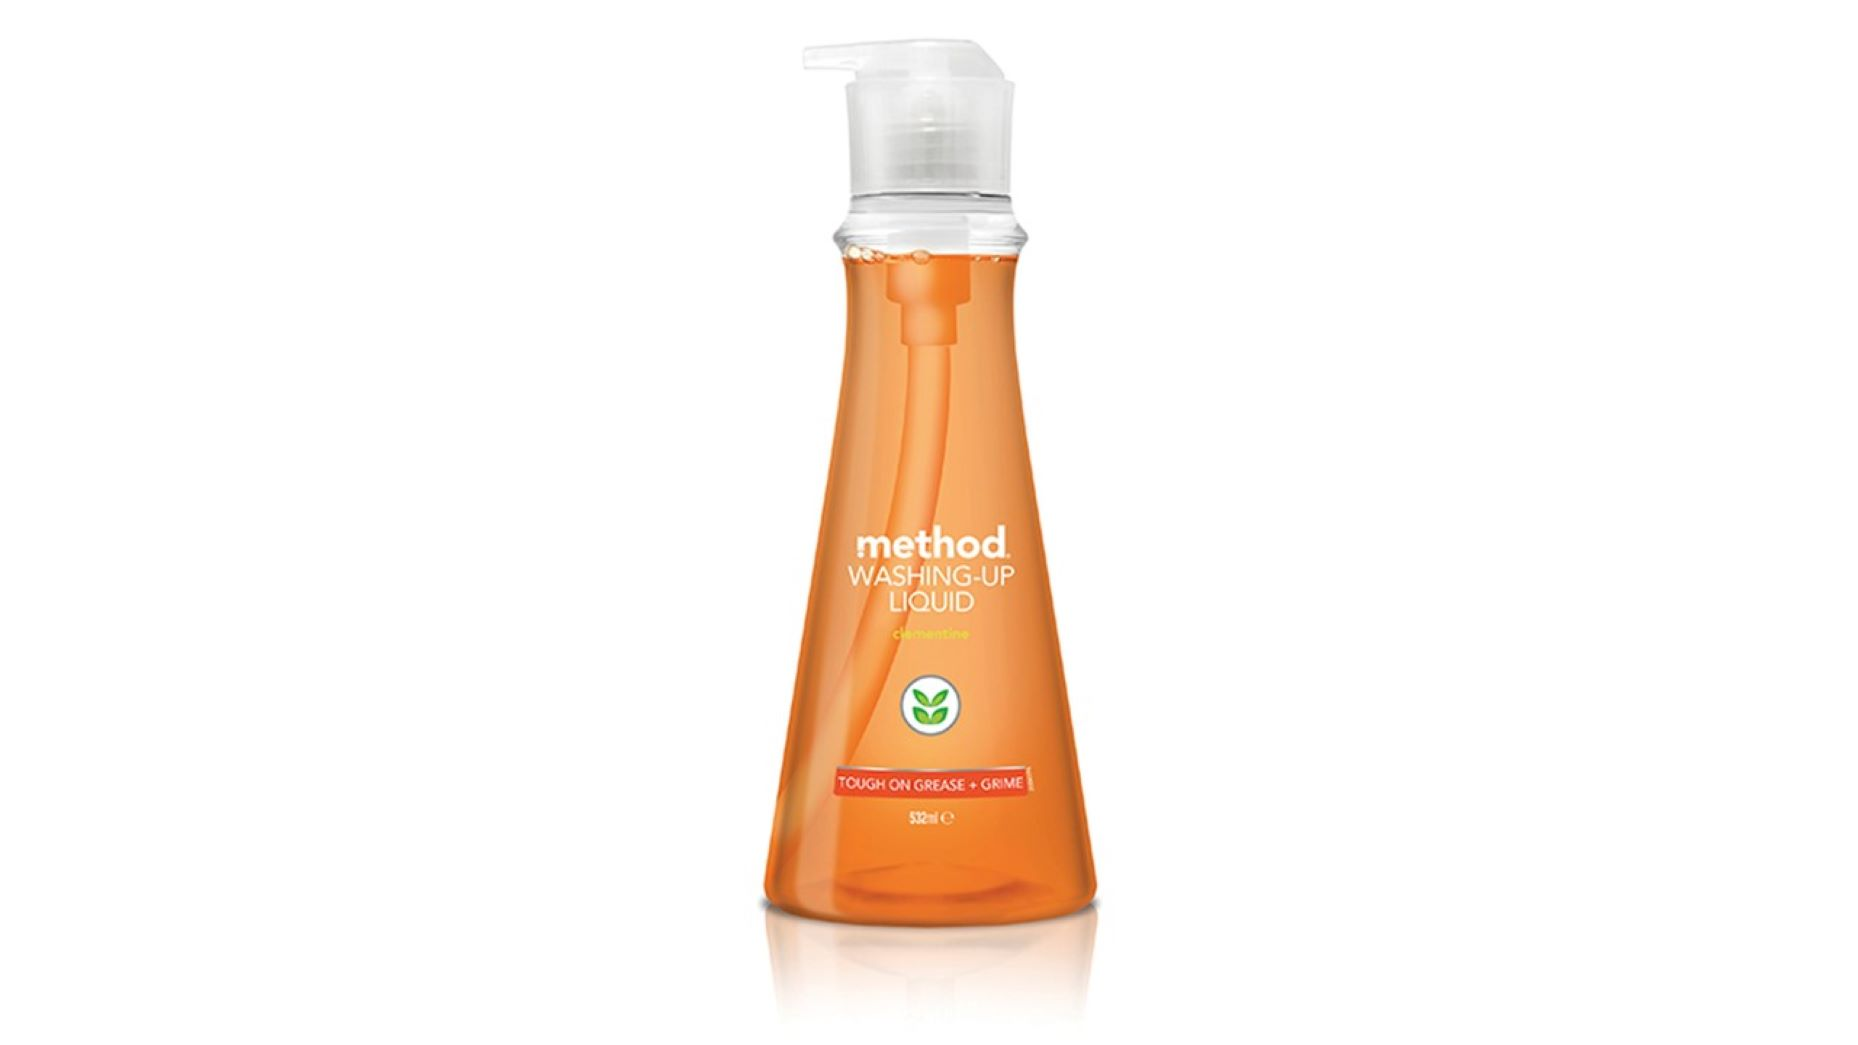 method Käsitiskiaine Klementiini 532ml